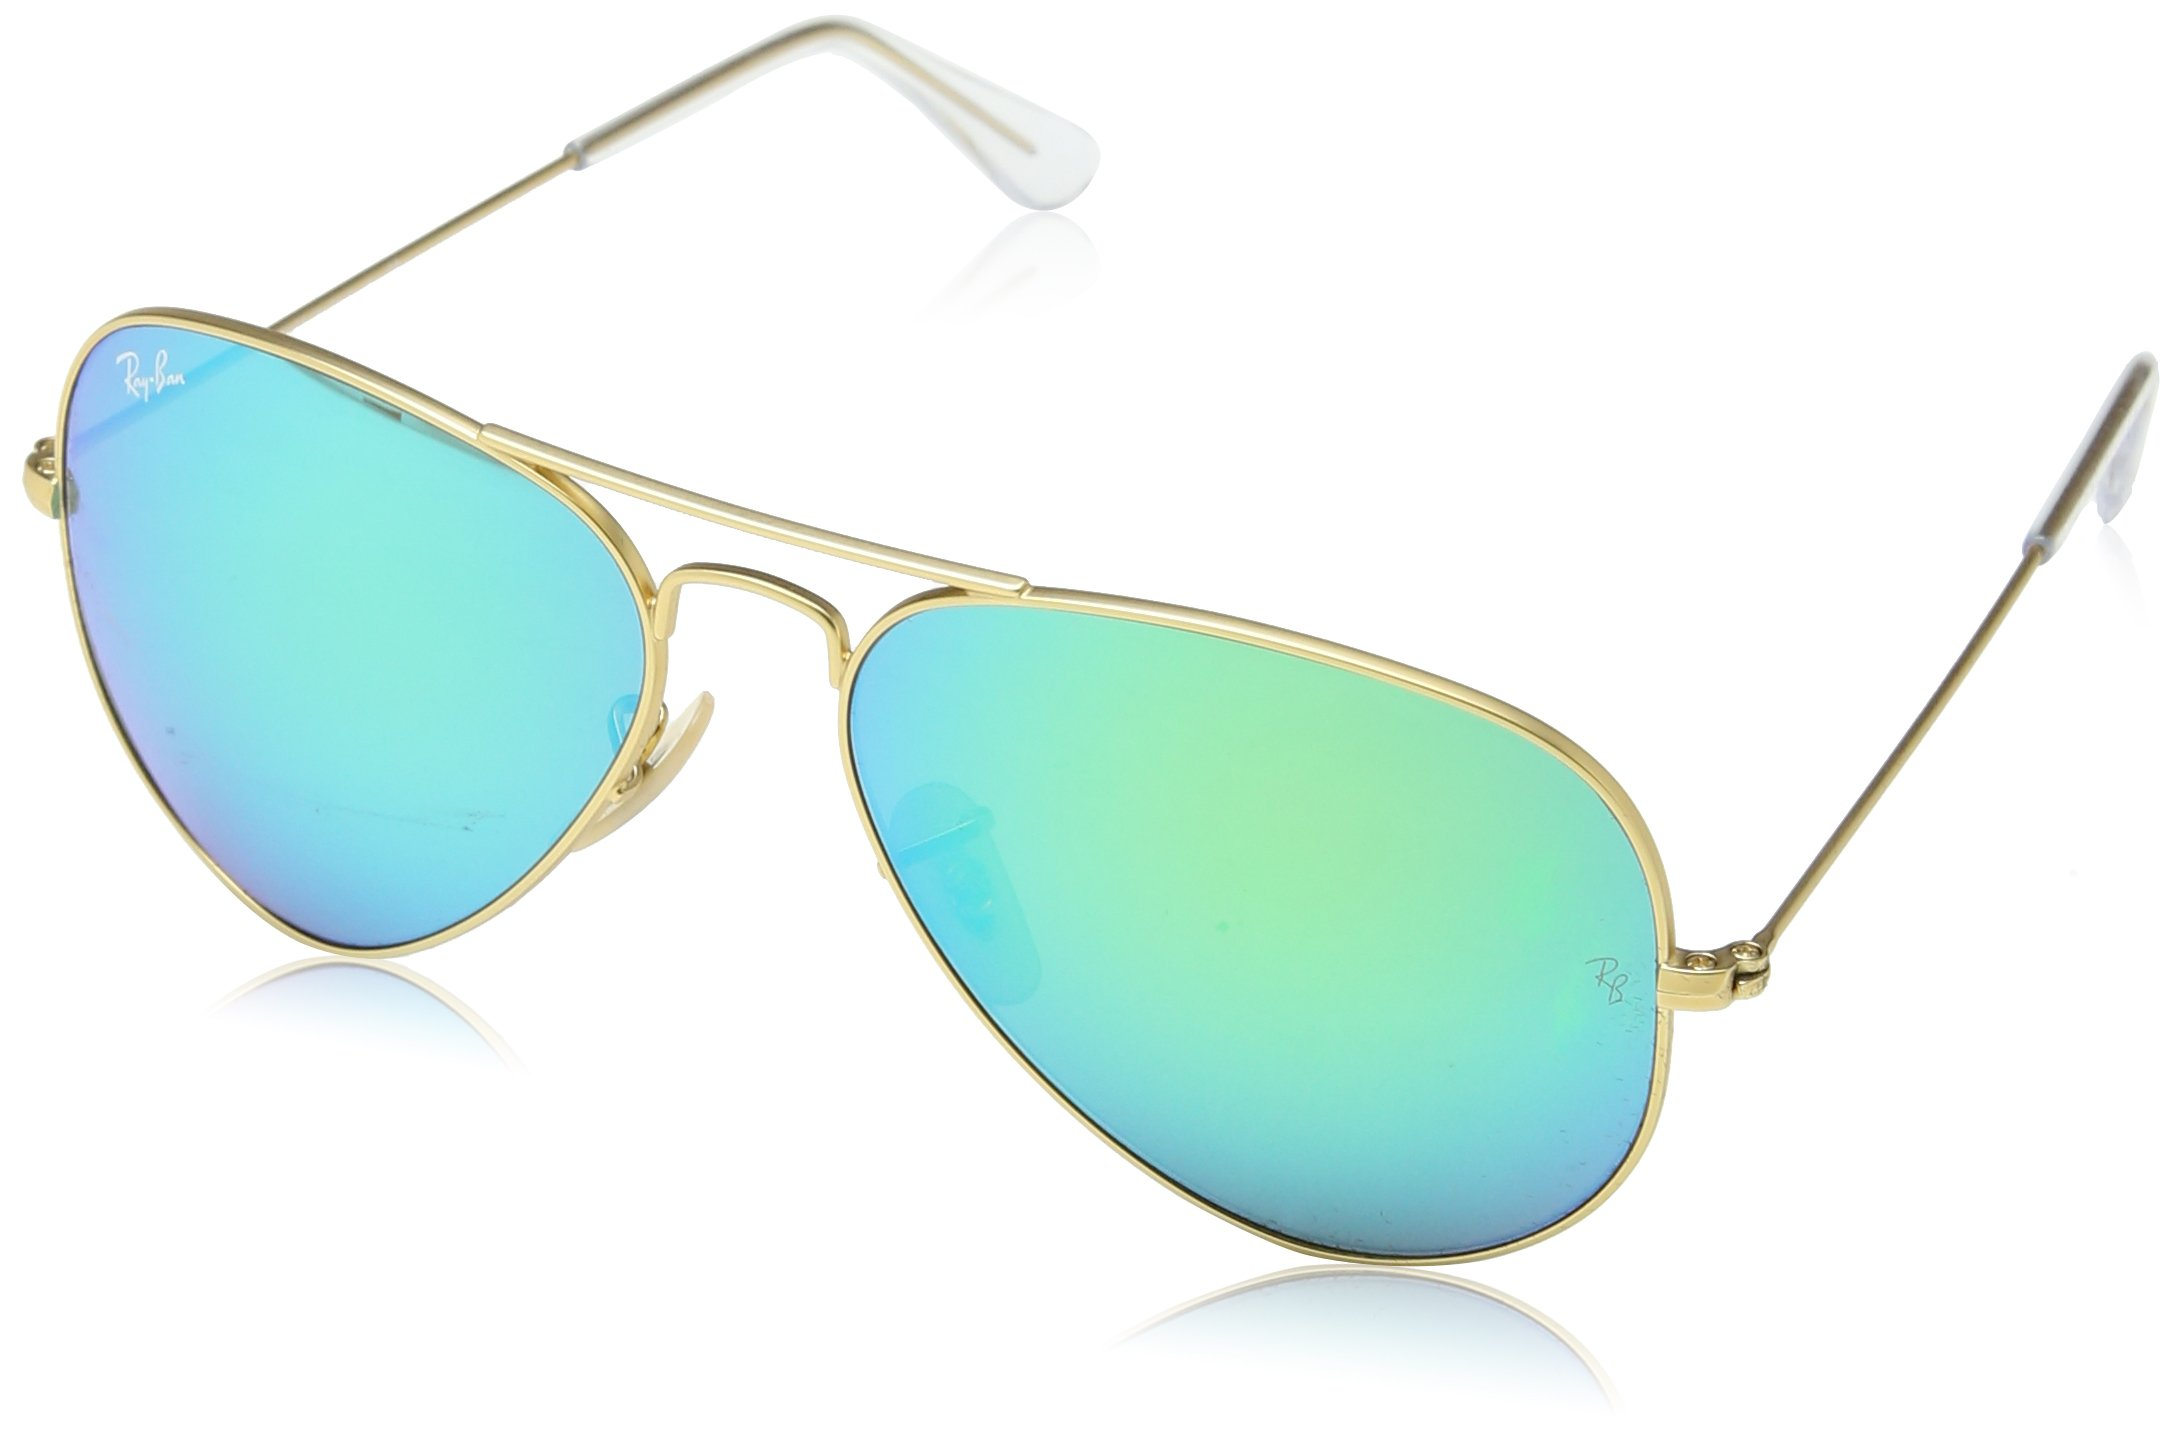 Ray-Ban 3025 Aviator Large Metal Mirrored Non-Polarized Sunglasses, Gold/Green Flash (112/19), 58mm